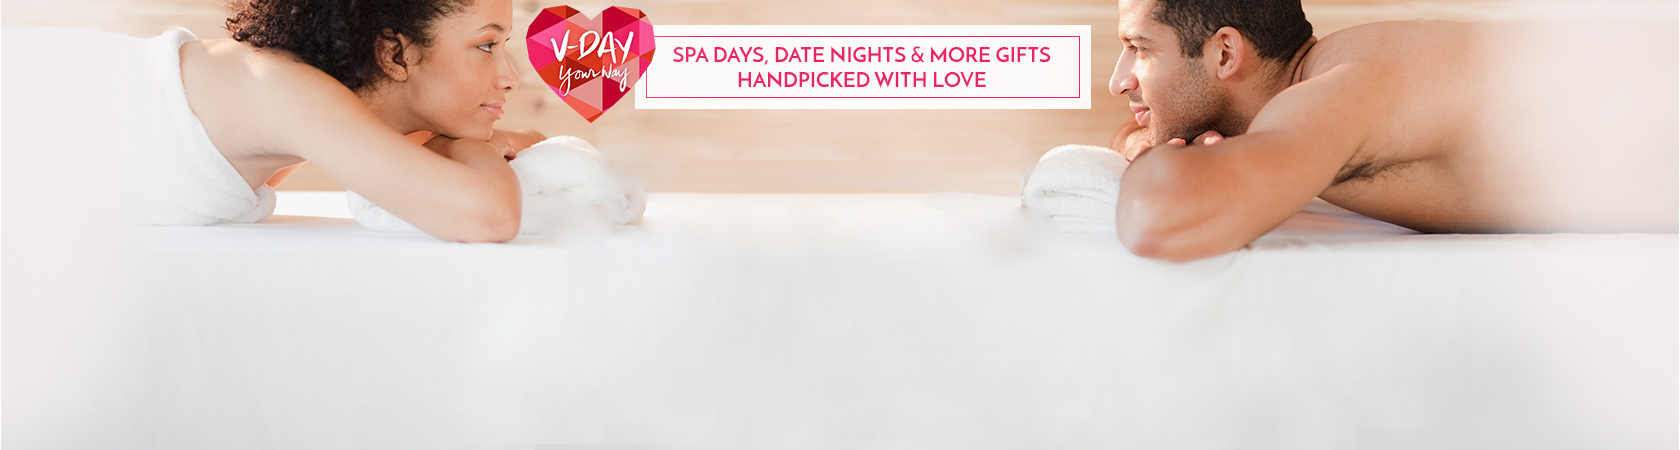 Handpicked Valentine's Day Gift Ideas